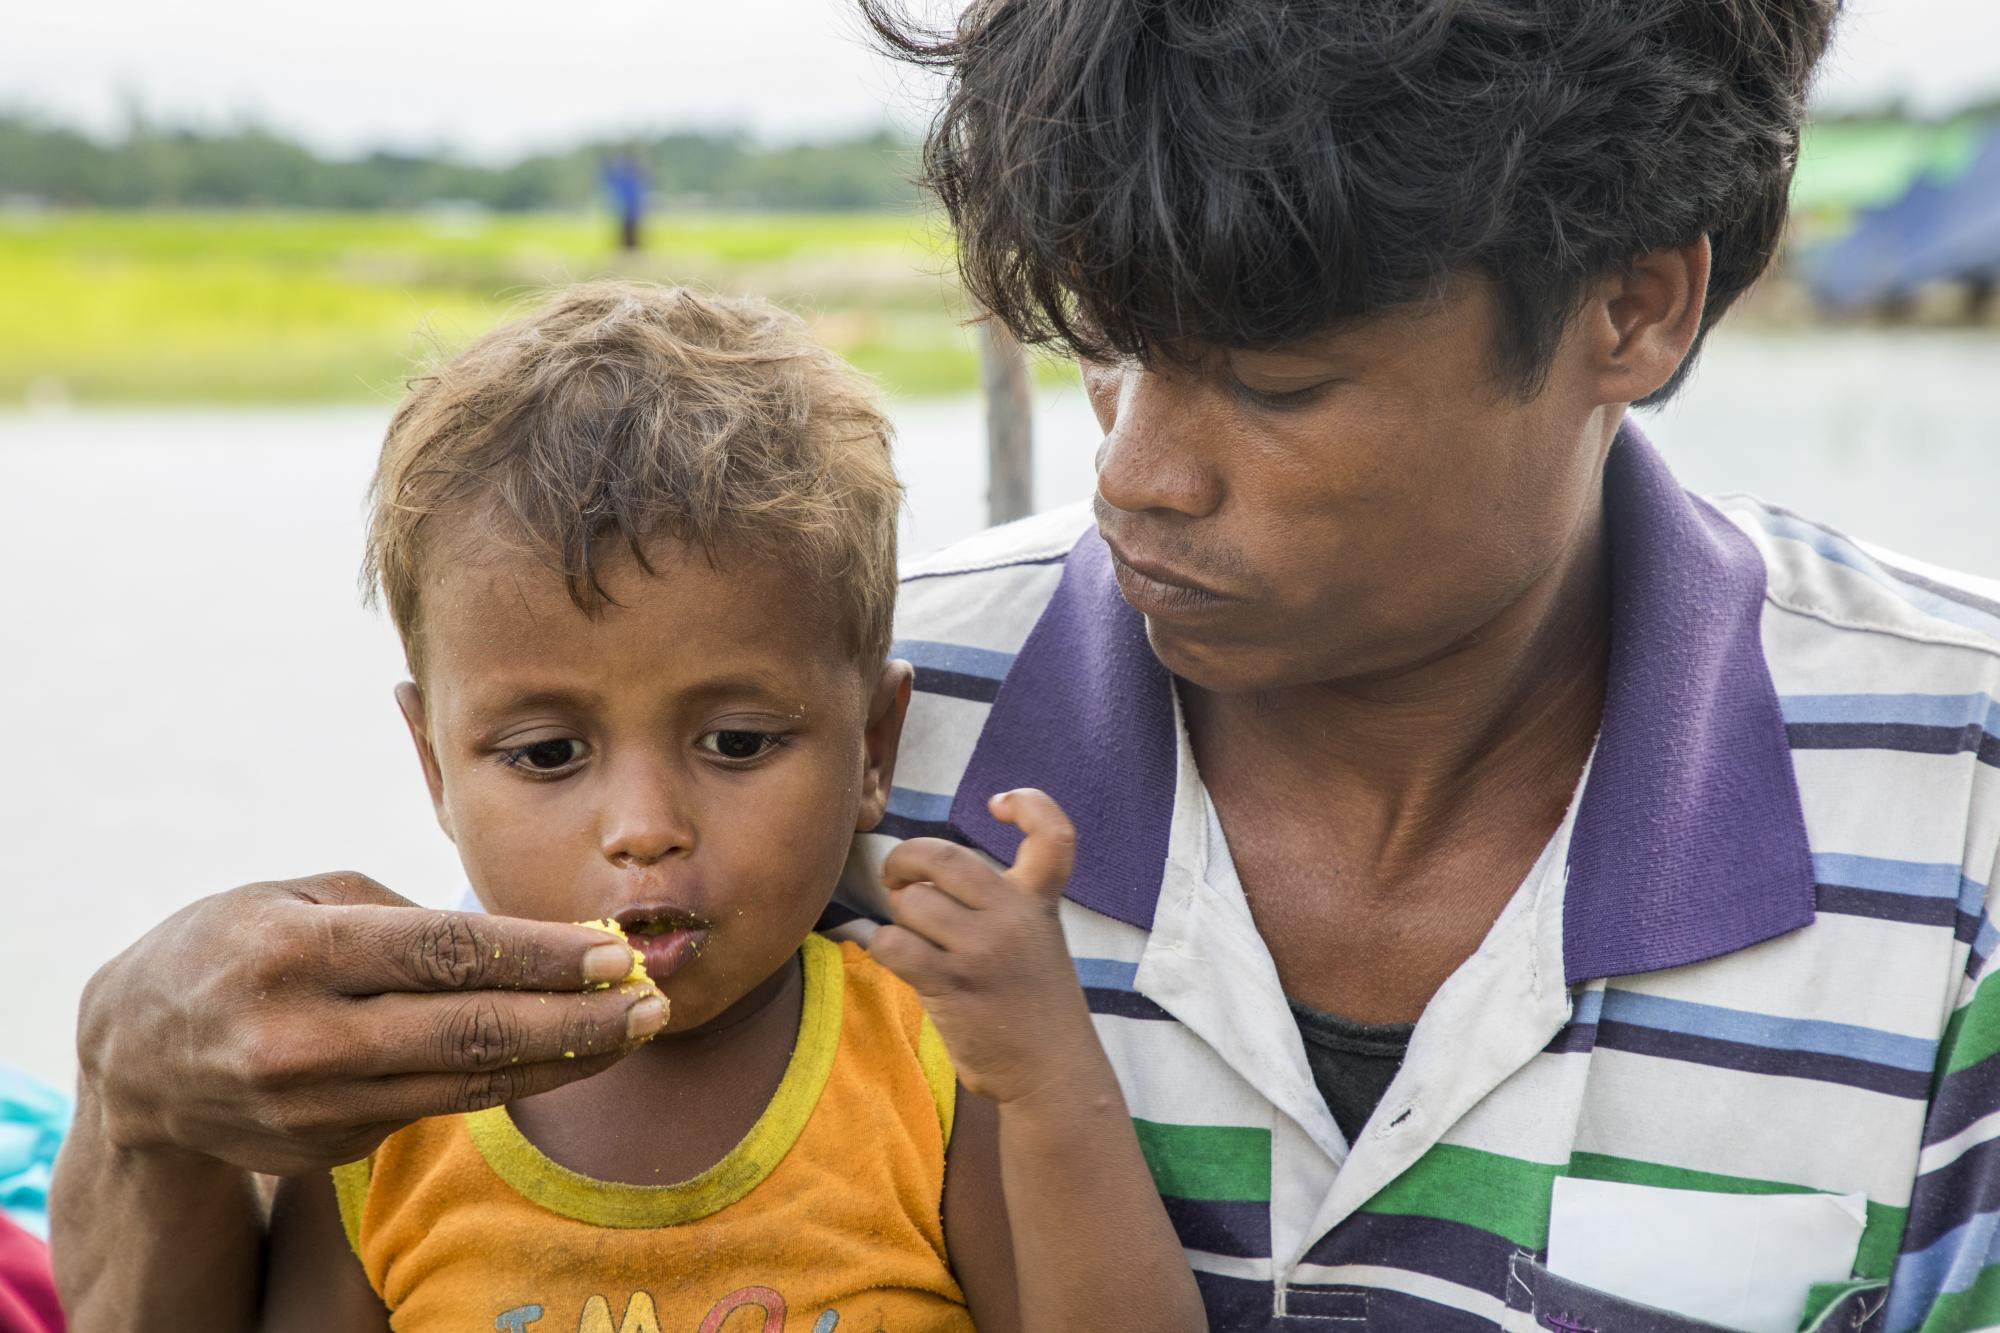 Various humanitarian organisations are providing life-saving aid, including food, shelter, and health assistance, among many. Photo: WFP / Saikat Mojumde